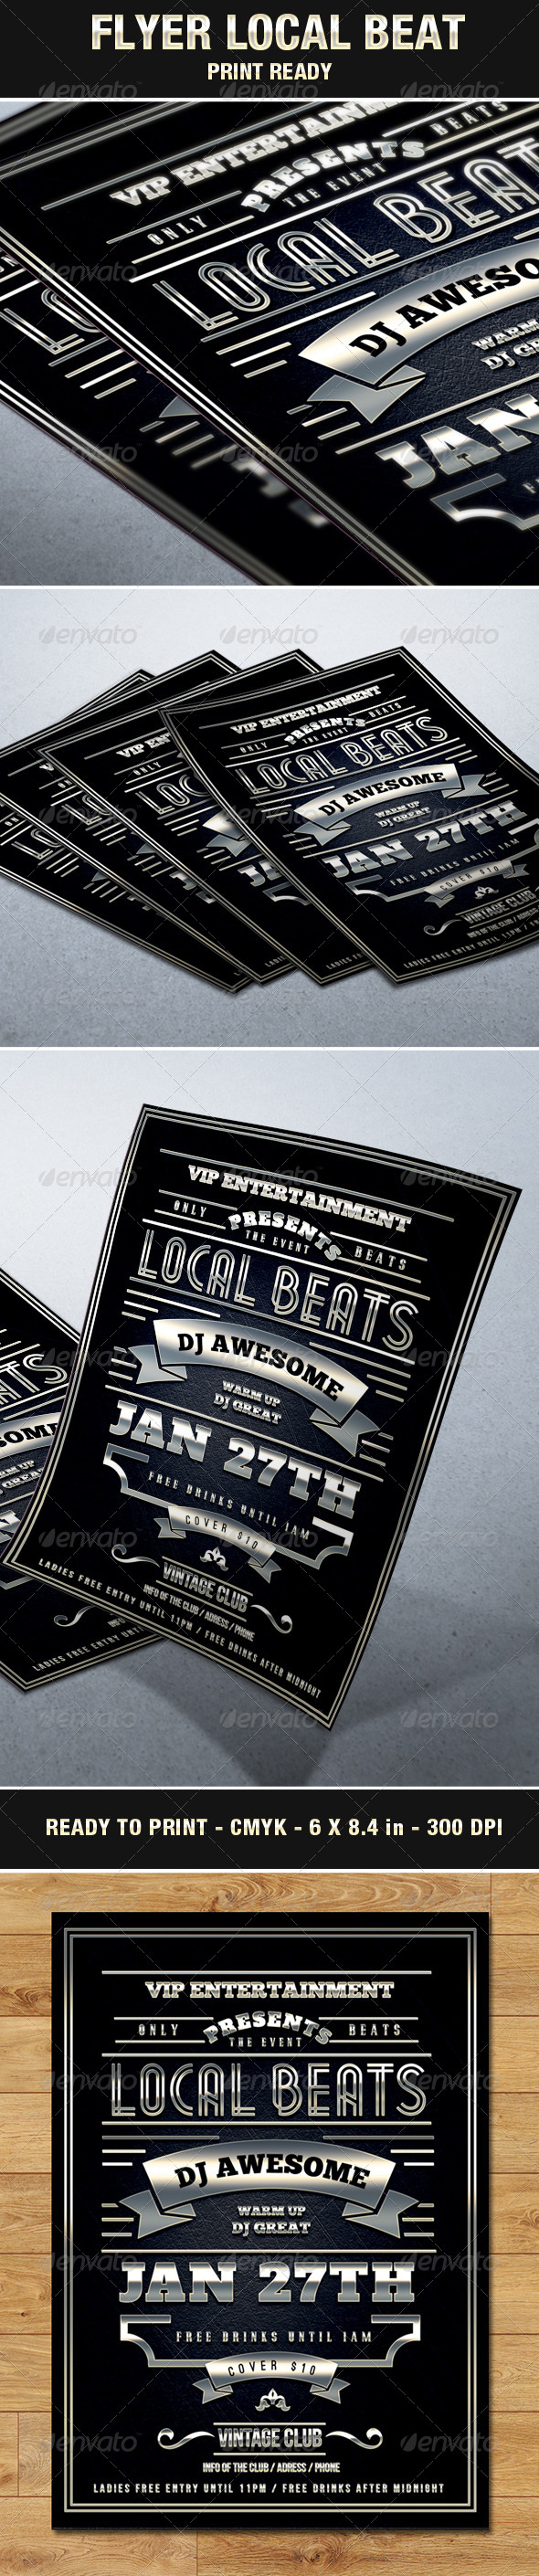 GraphicRiver Vintage & Elegant Flyer Local Beats 6823170